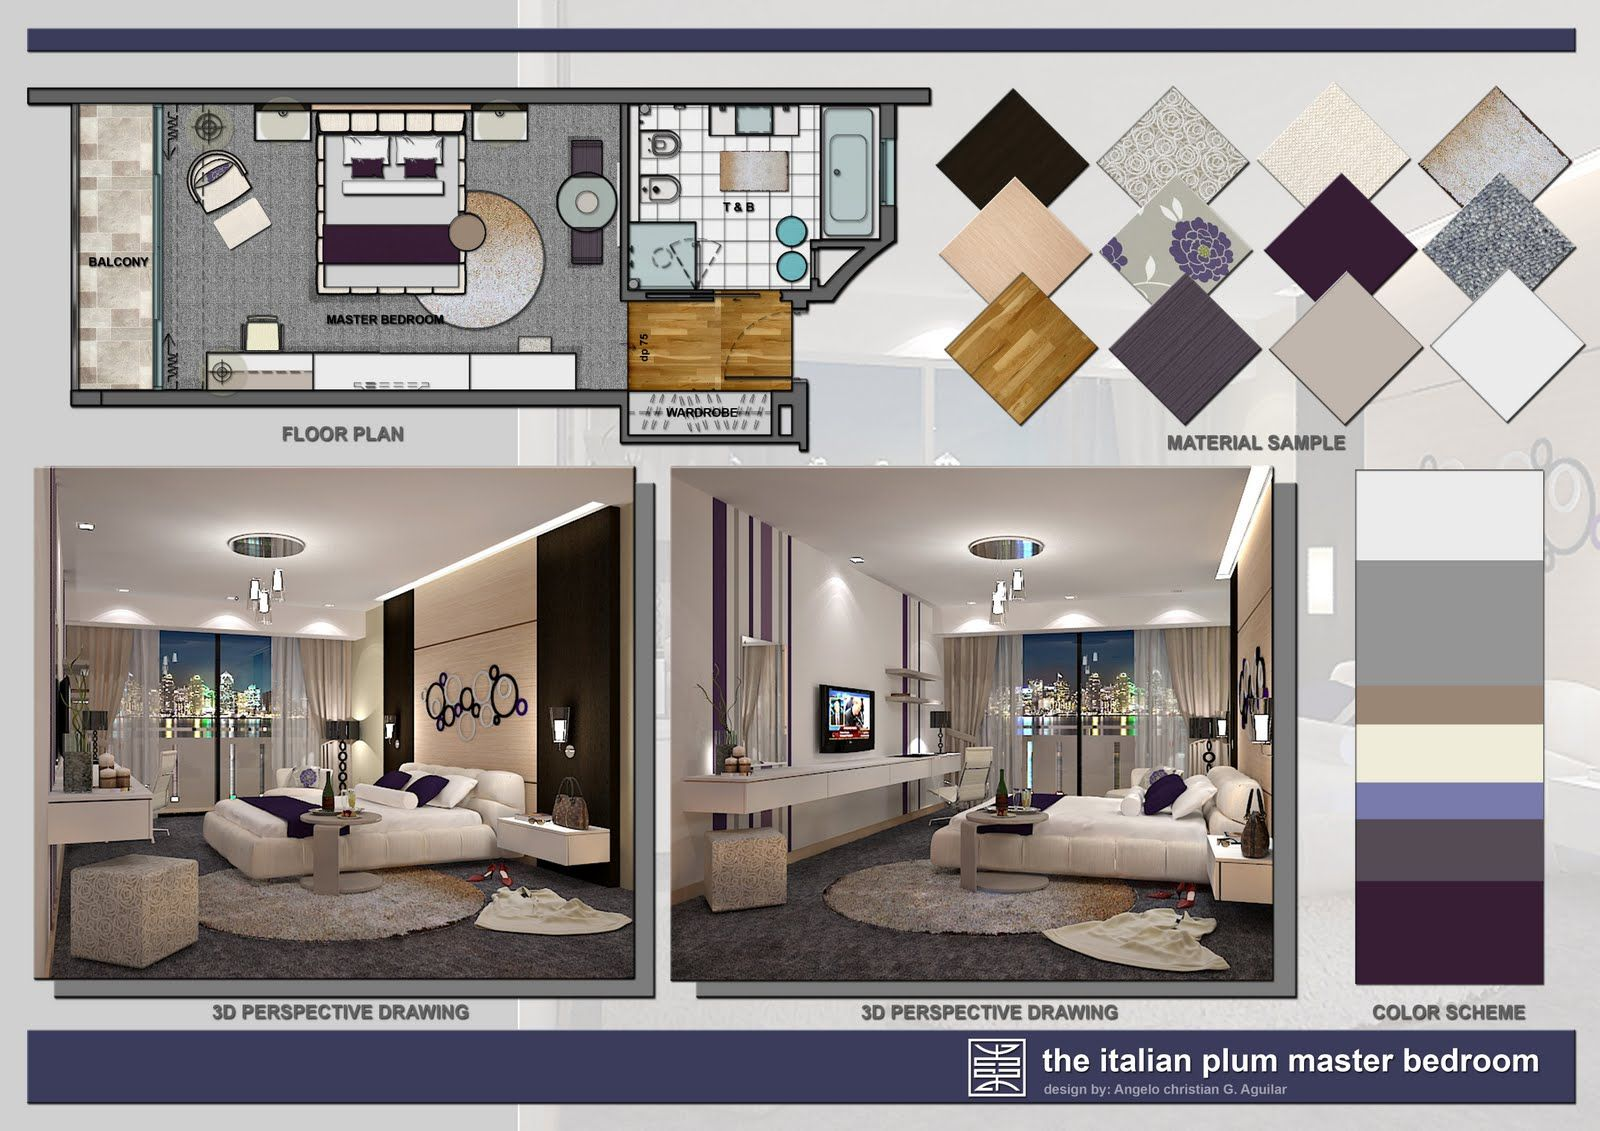 Ordinary design my room online part 2 interior design for Interior designer on line